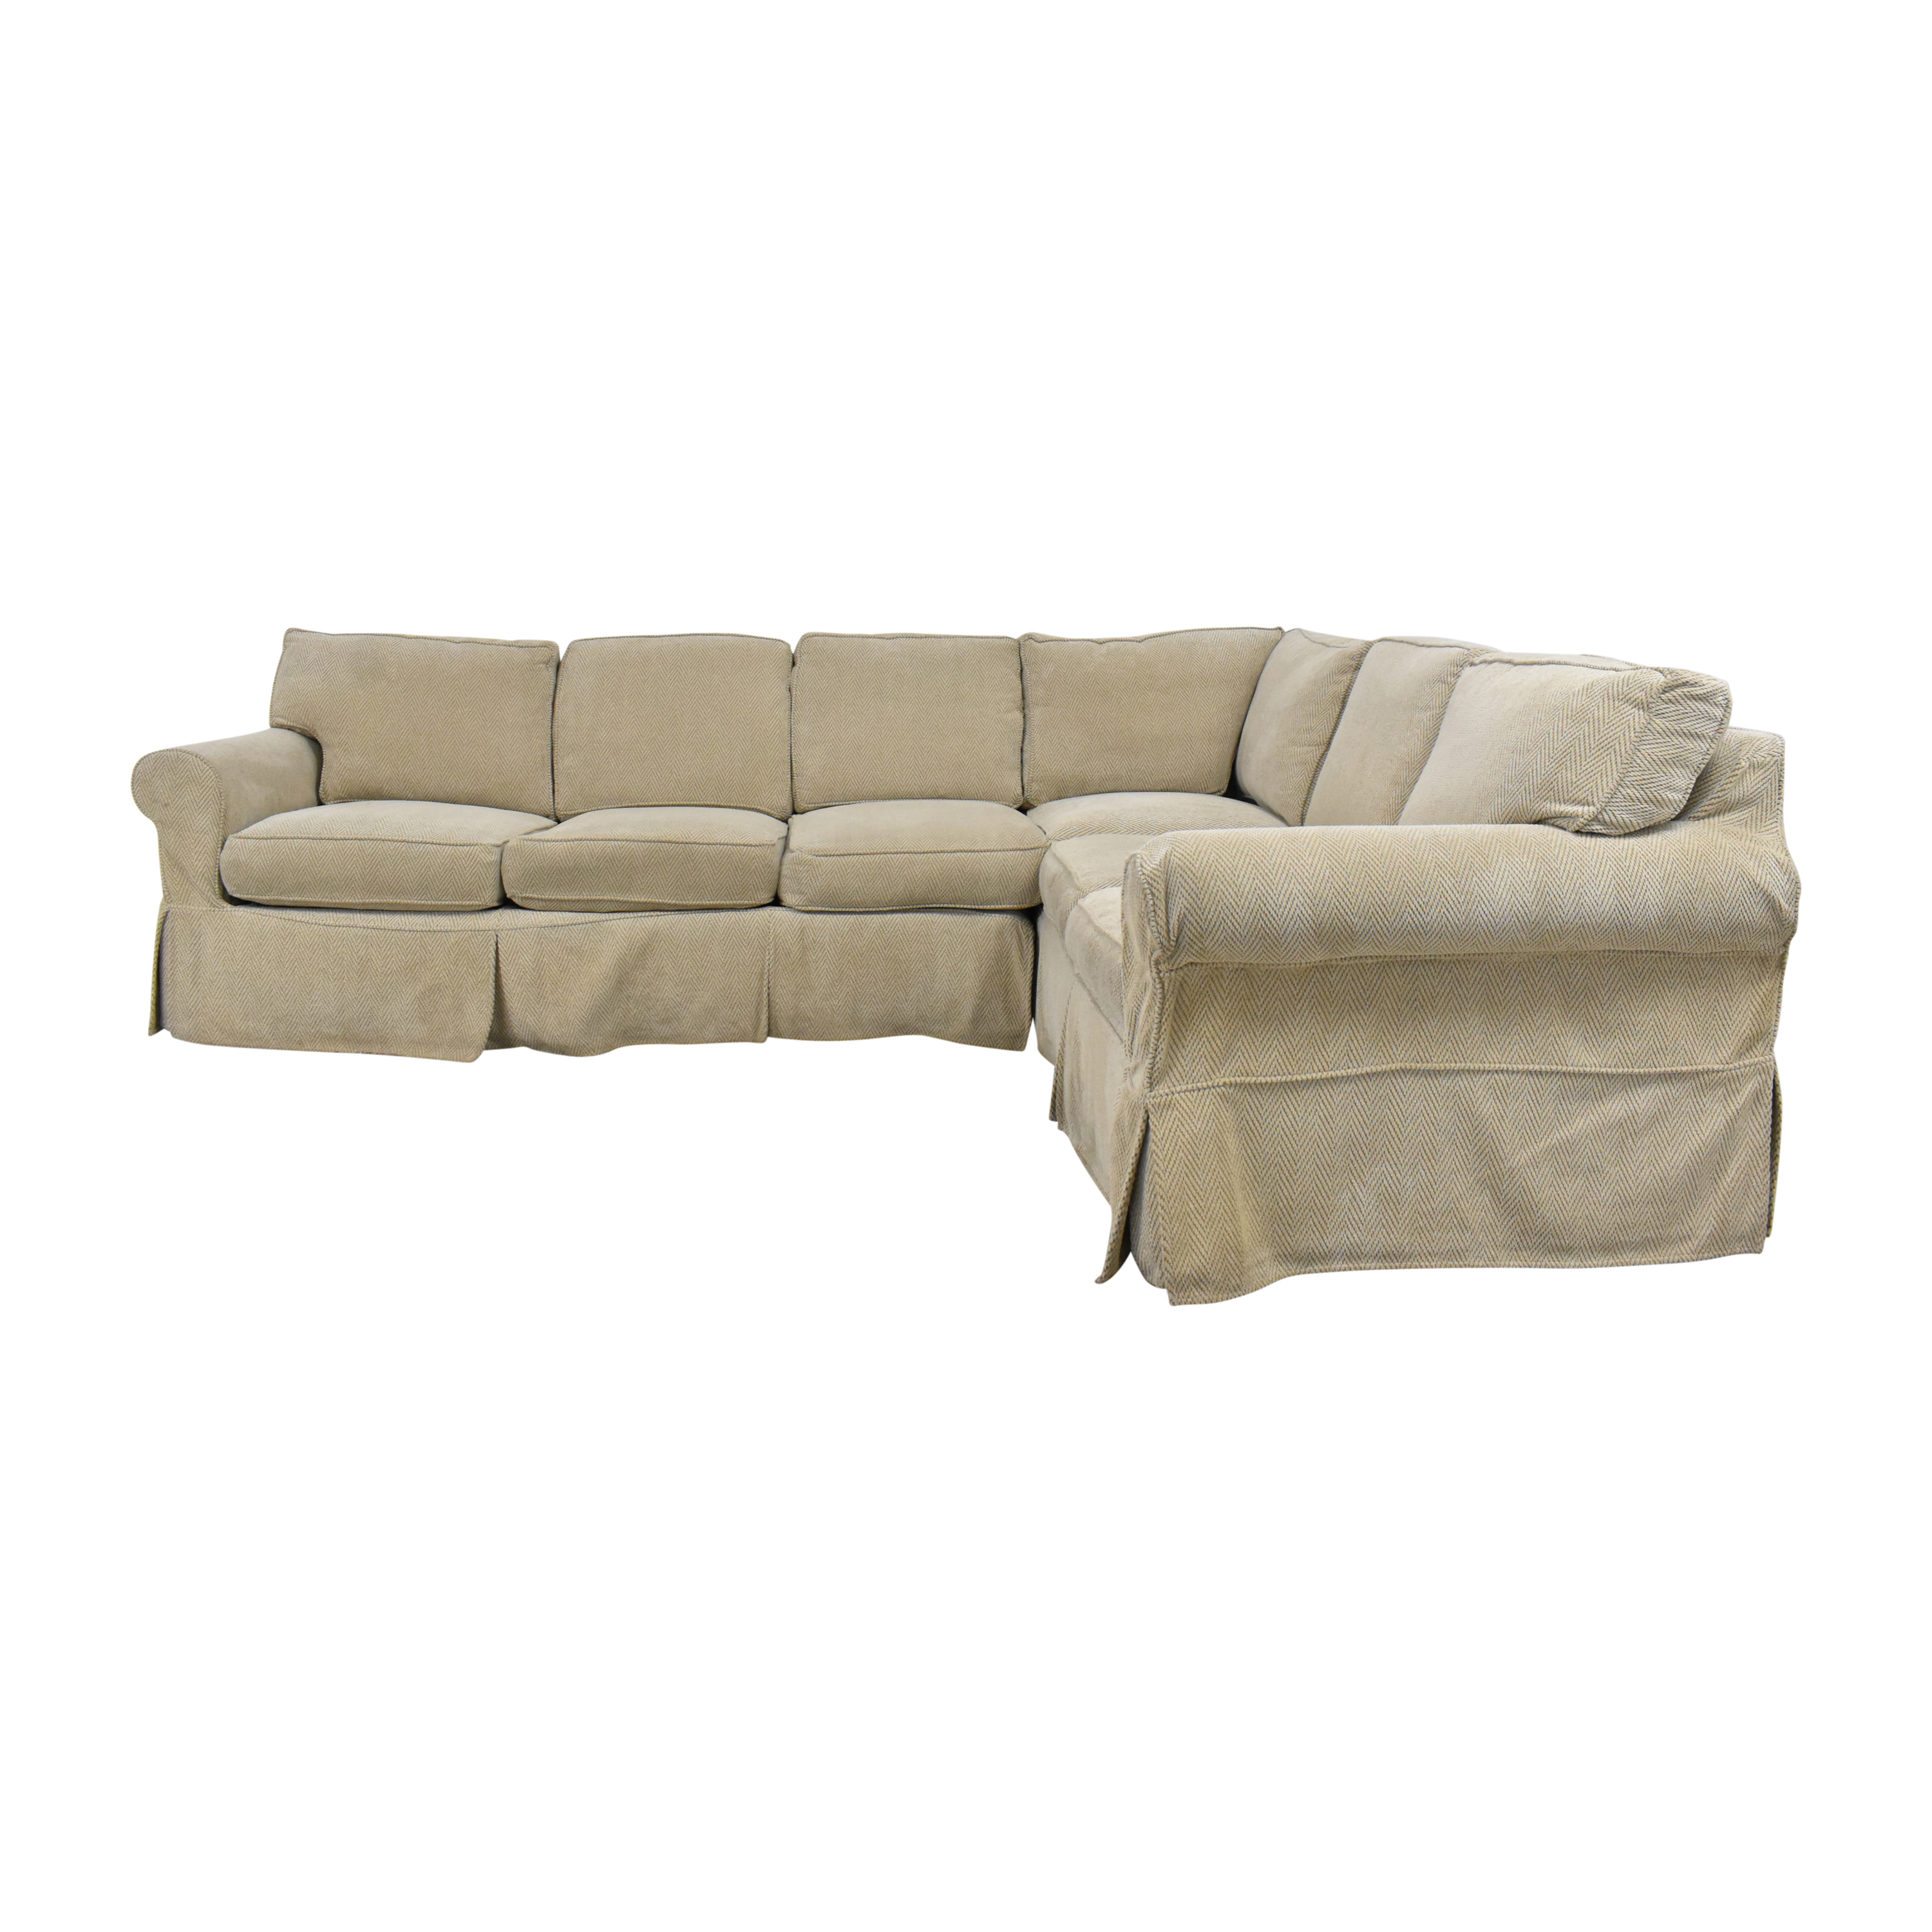 Country Willow Country Willow Vineyard Slipcovered Corner Sectional Sofa Sectionals